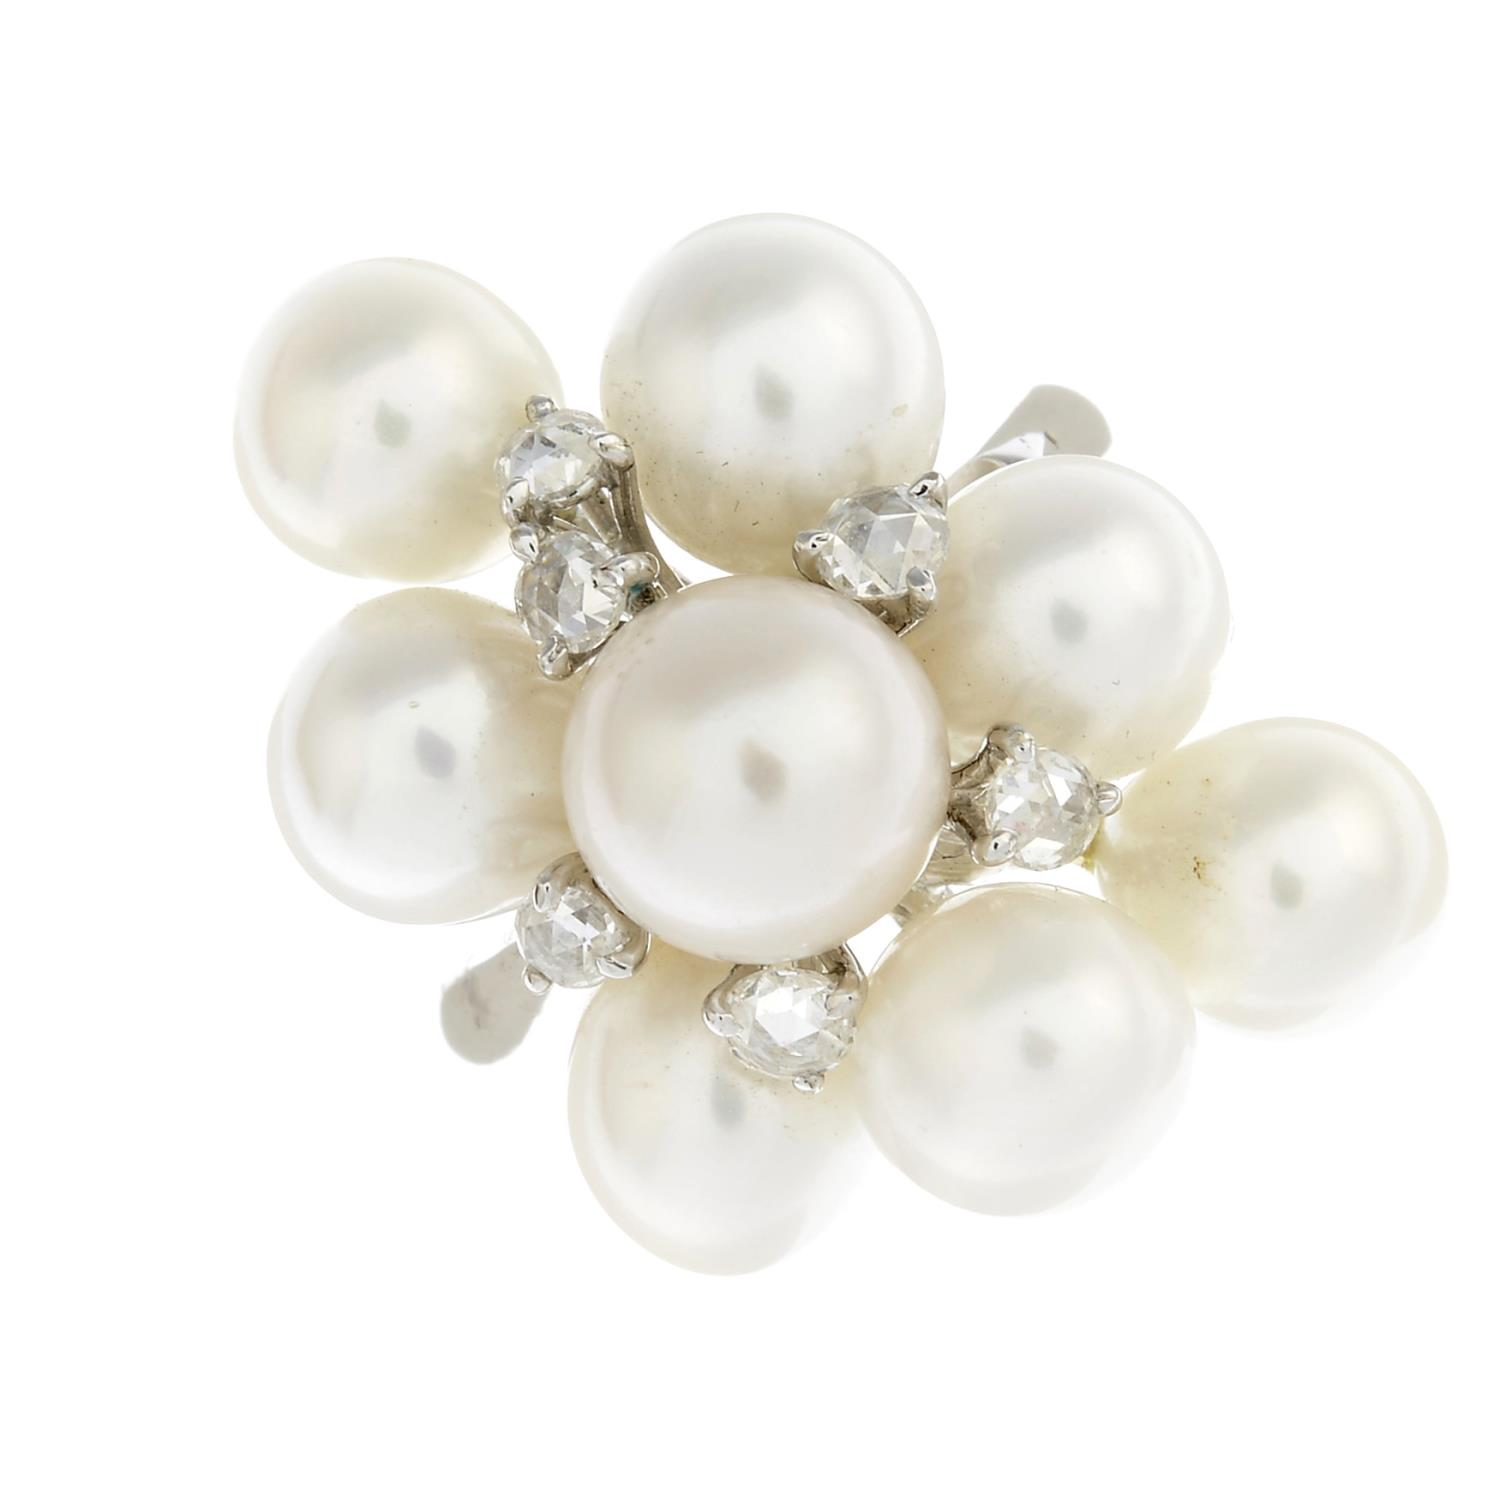 Lot 48 - A cultured pearl and diamond dress ring.Estimated diameters of cultured pearls 8 to 7mms.